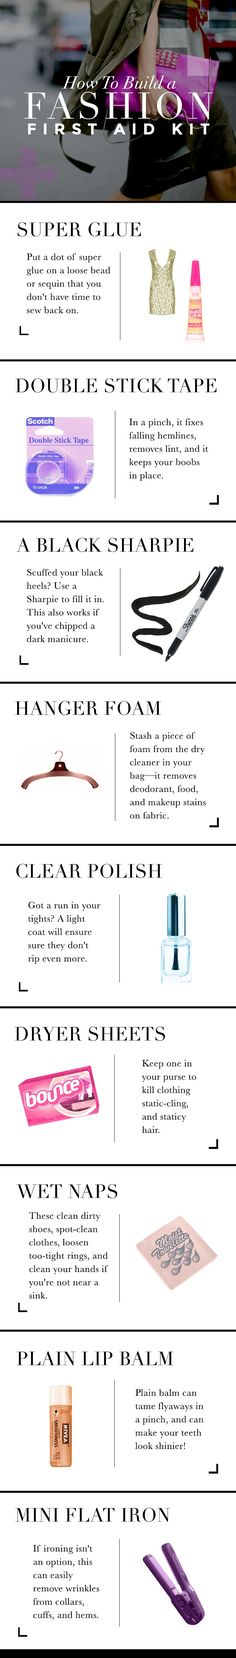 What Is Essential To Your Fashion First Aid Kit!